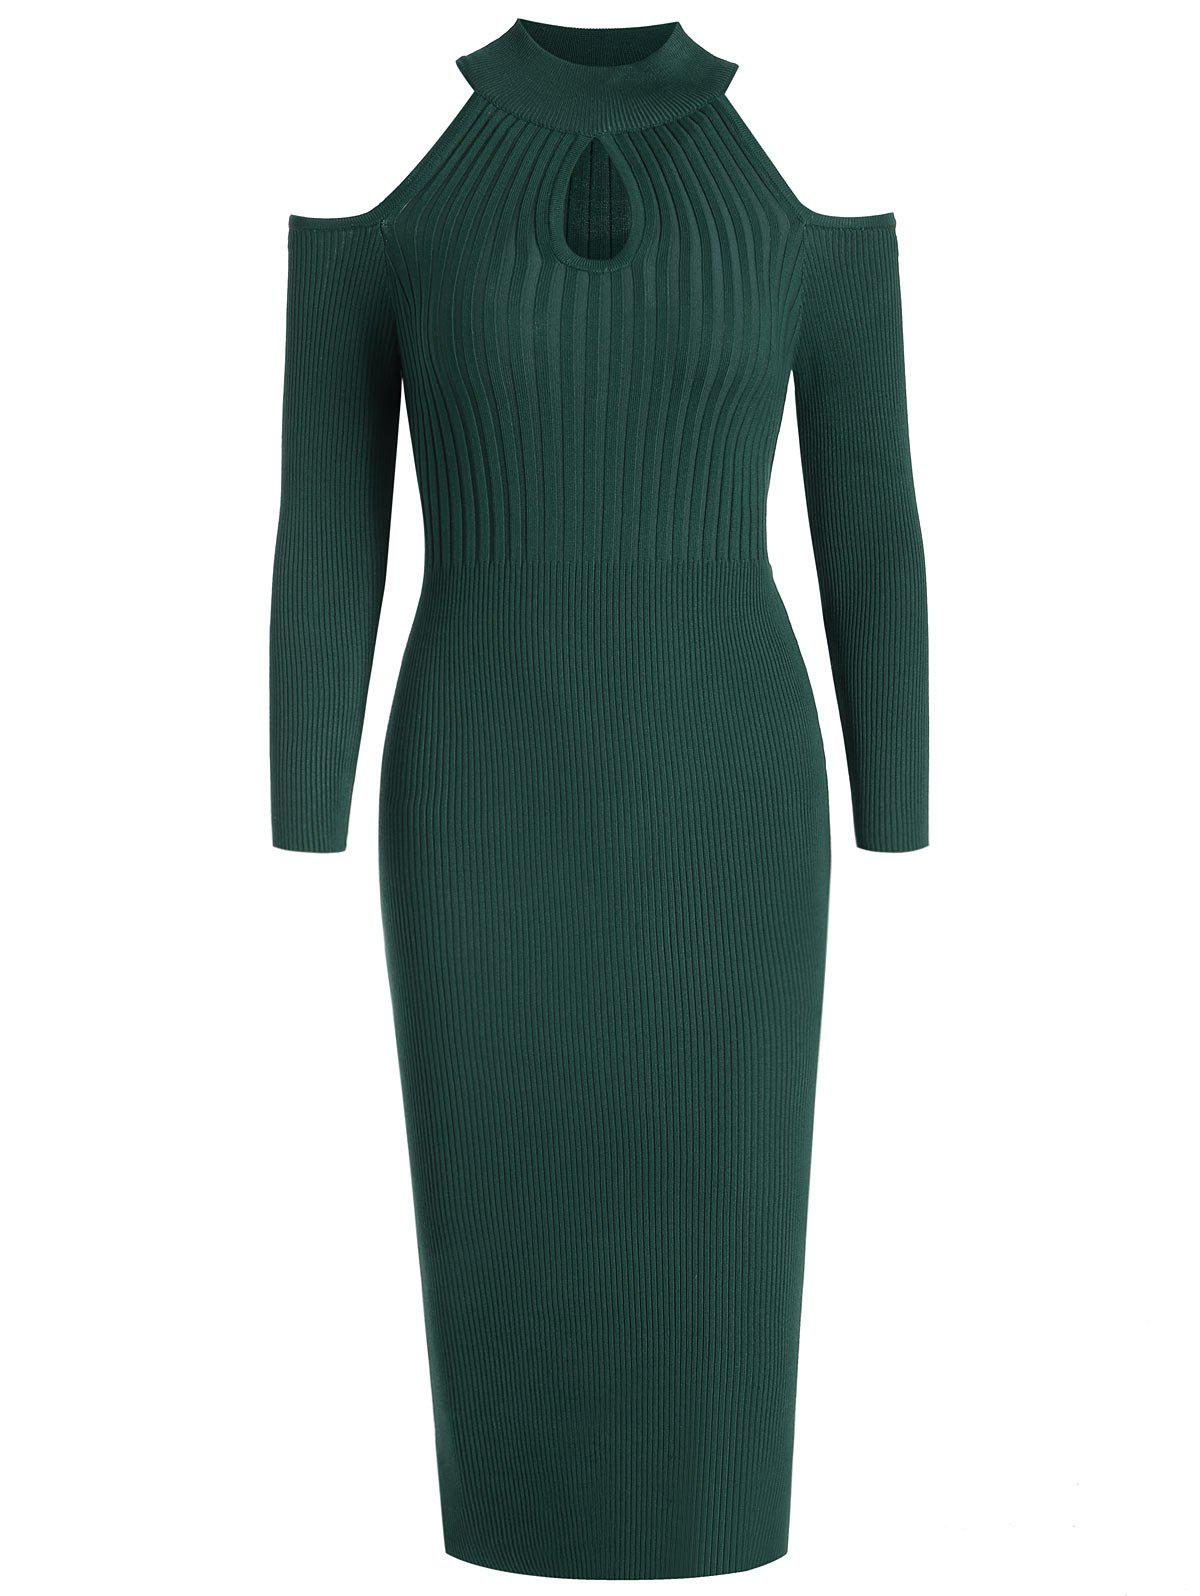 Fancy Women's Stand Collar Dew Shoulder Long Sleeved Bodycon Dress